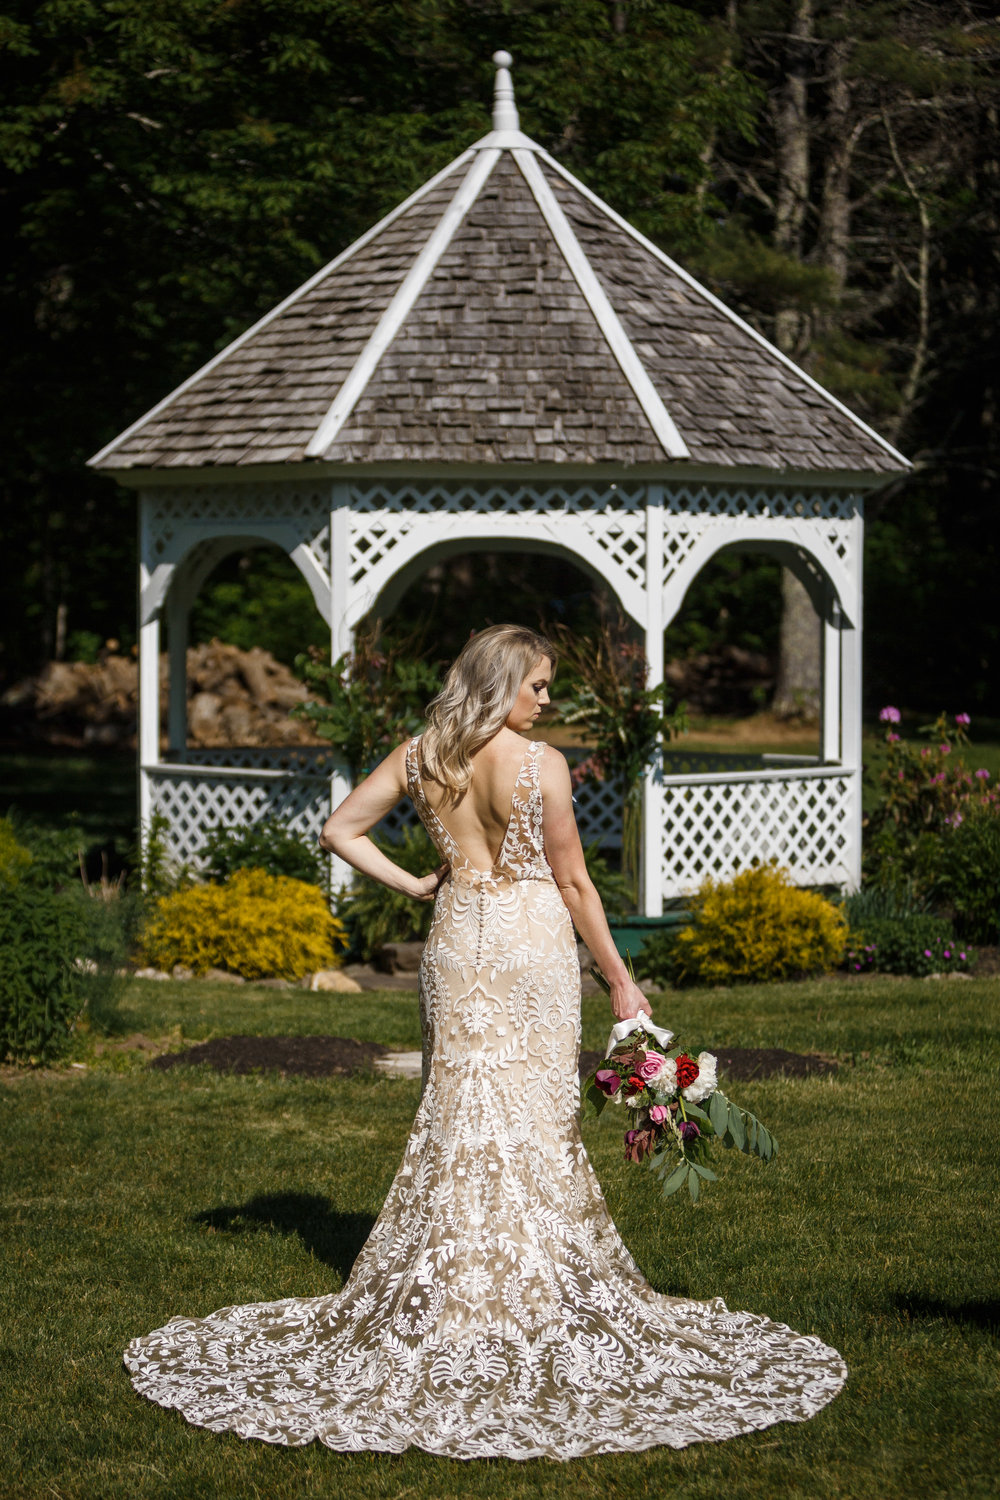 87_maple_moon_farm_lulu_and_co_inspiration_shoot_lebanon_maine_wedding_photographer_whitney_j_fox_8776.jpg